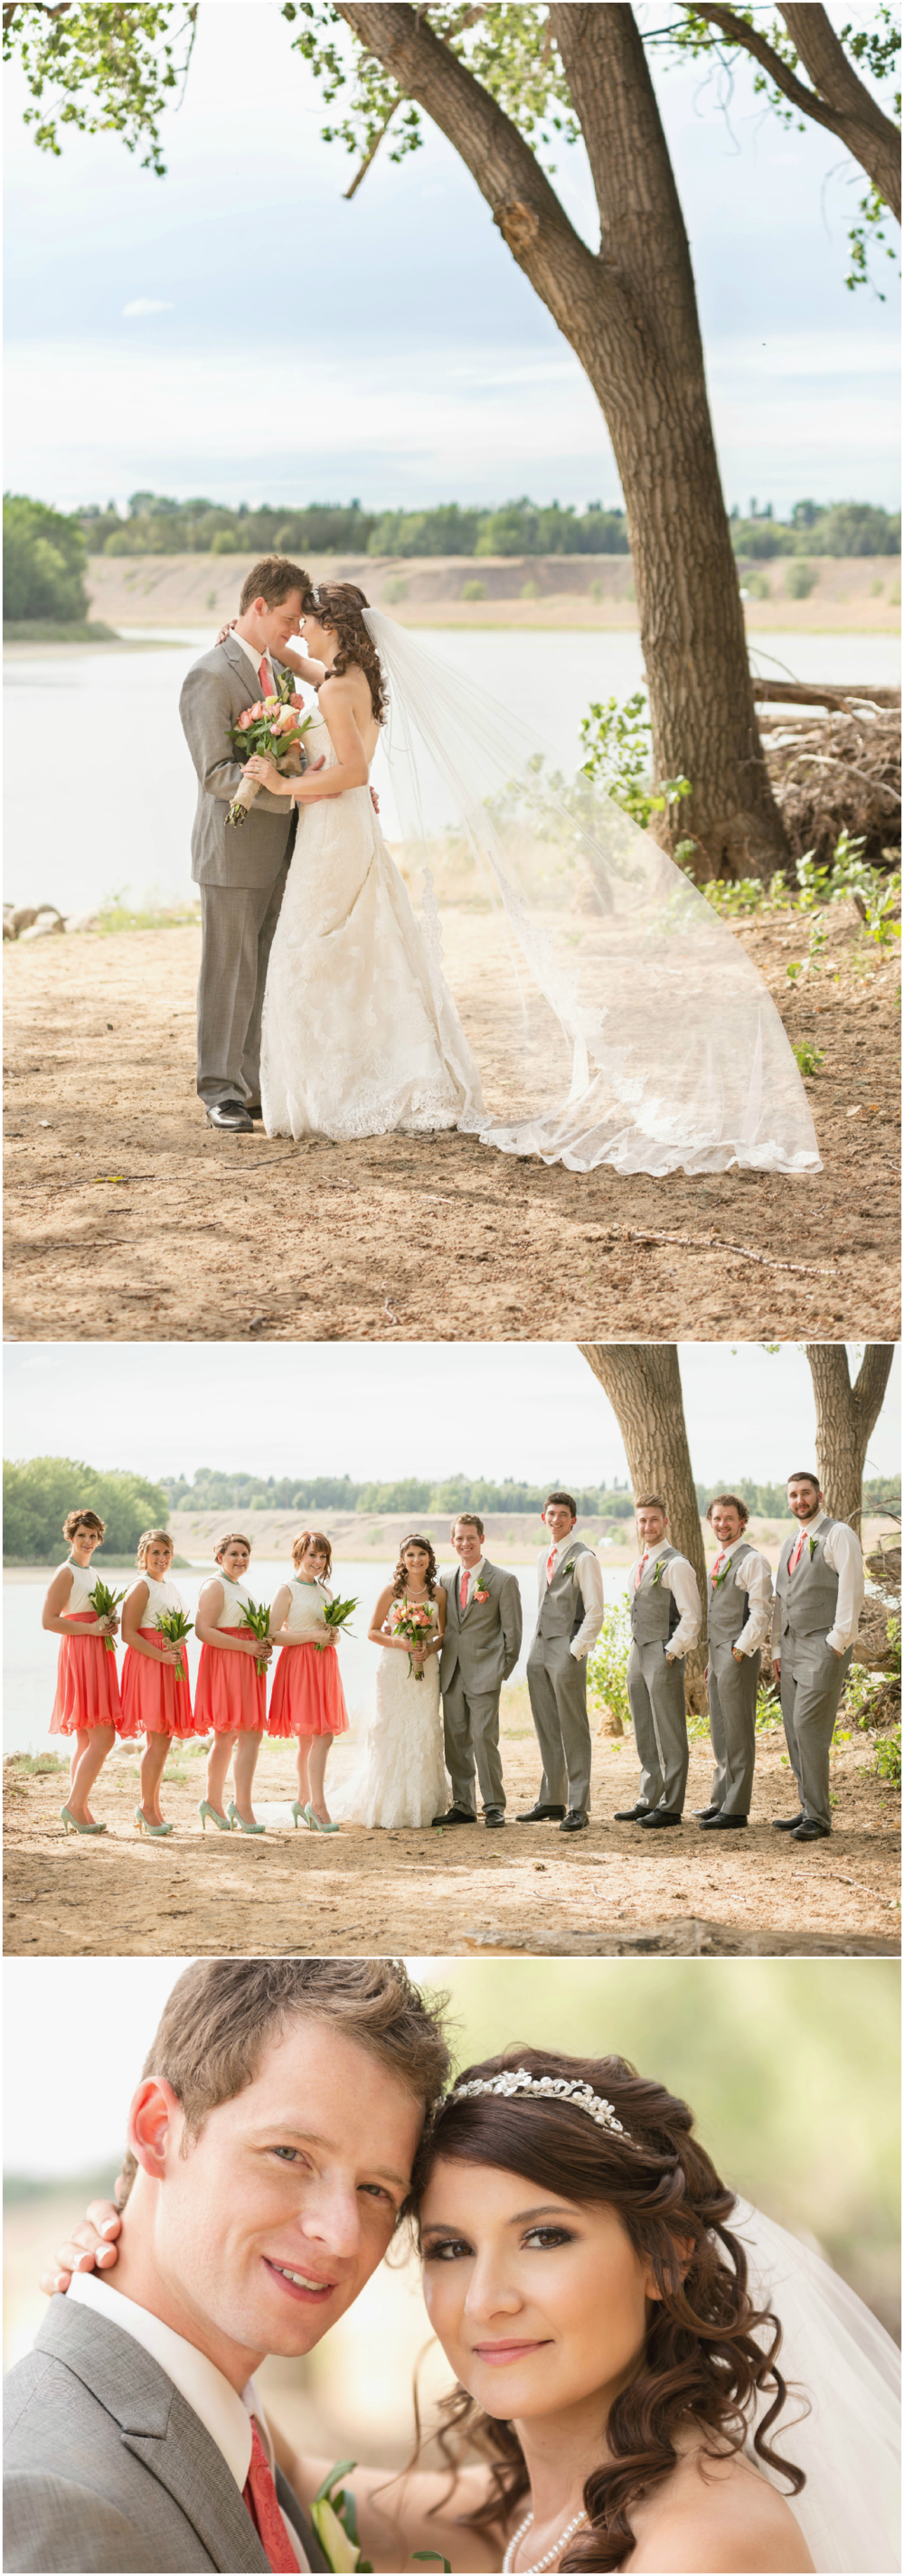 teal_coral_holy-family_medhat_wedding_27.png